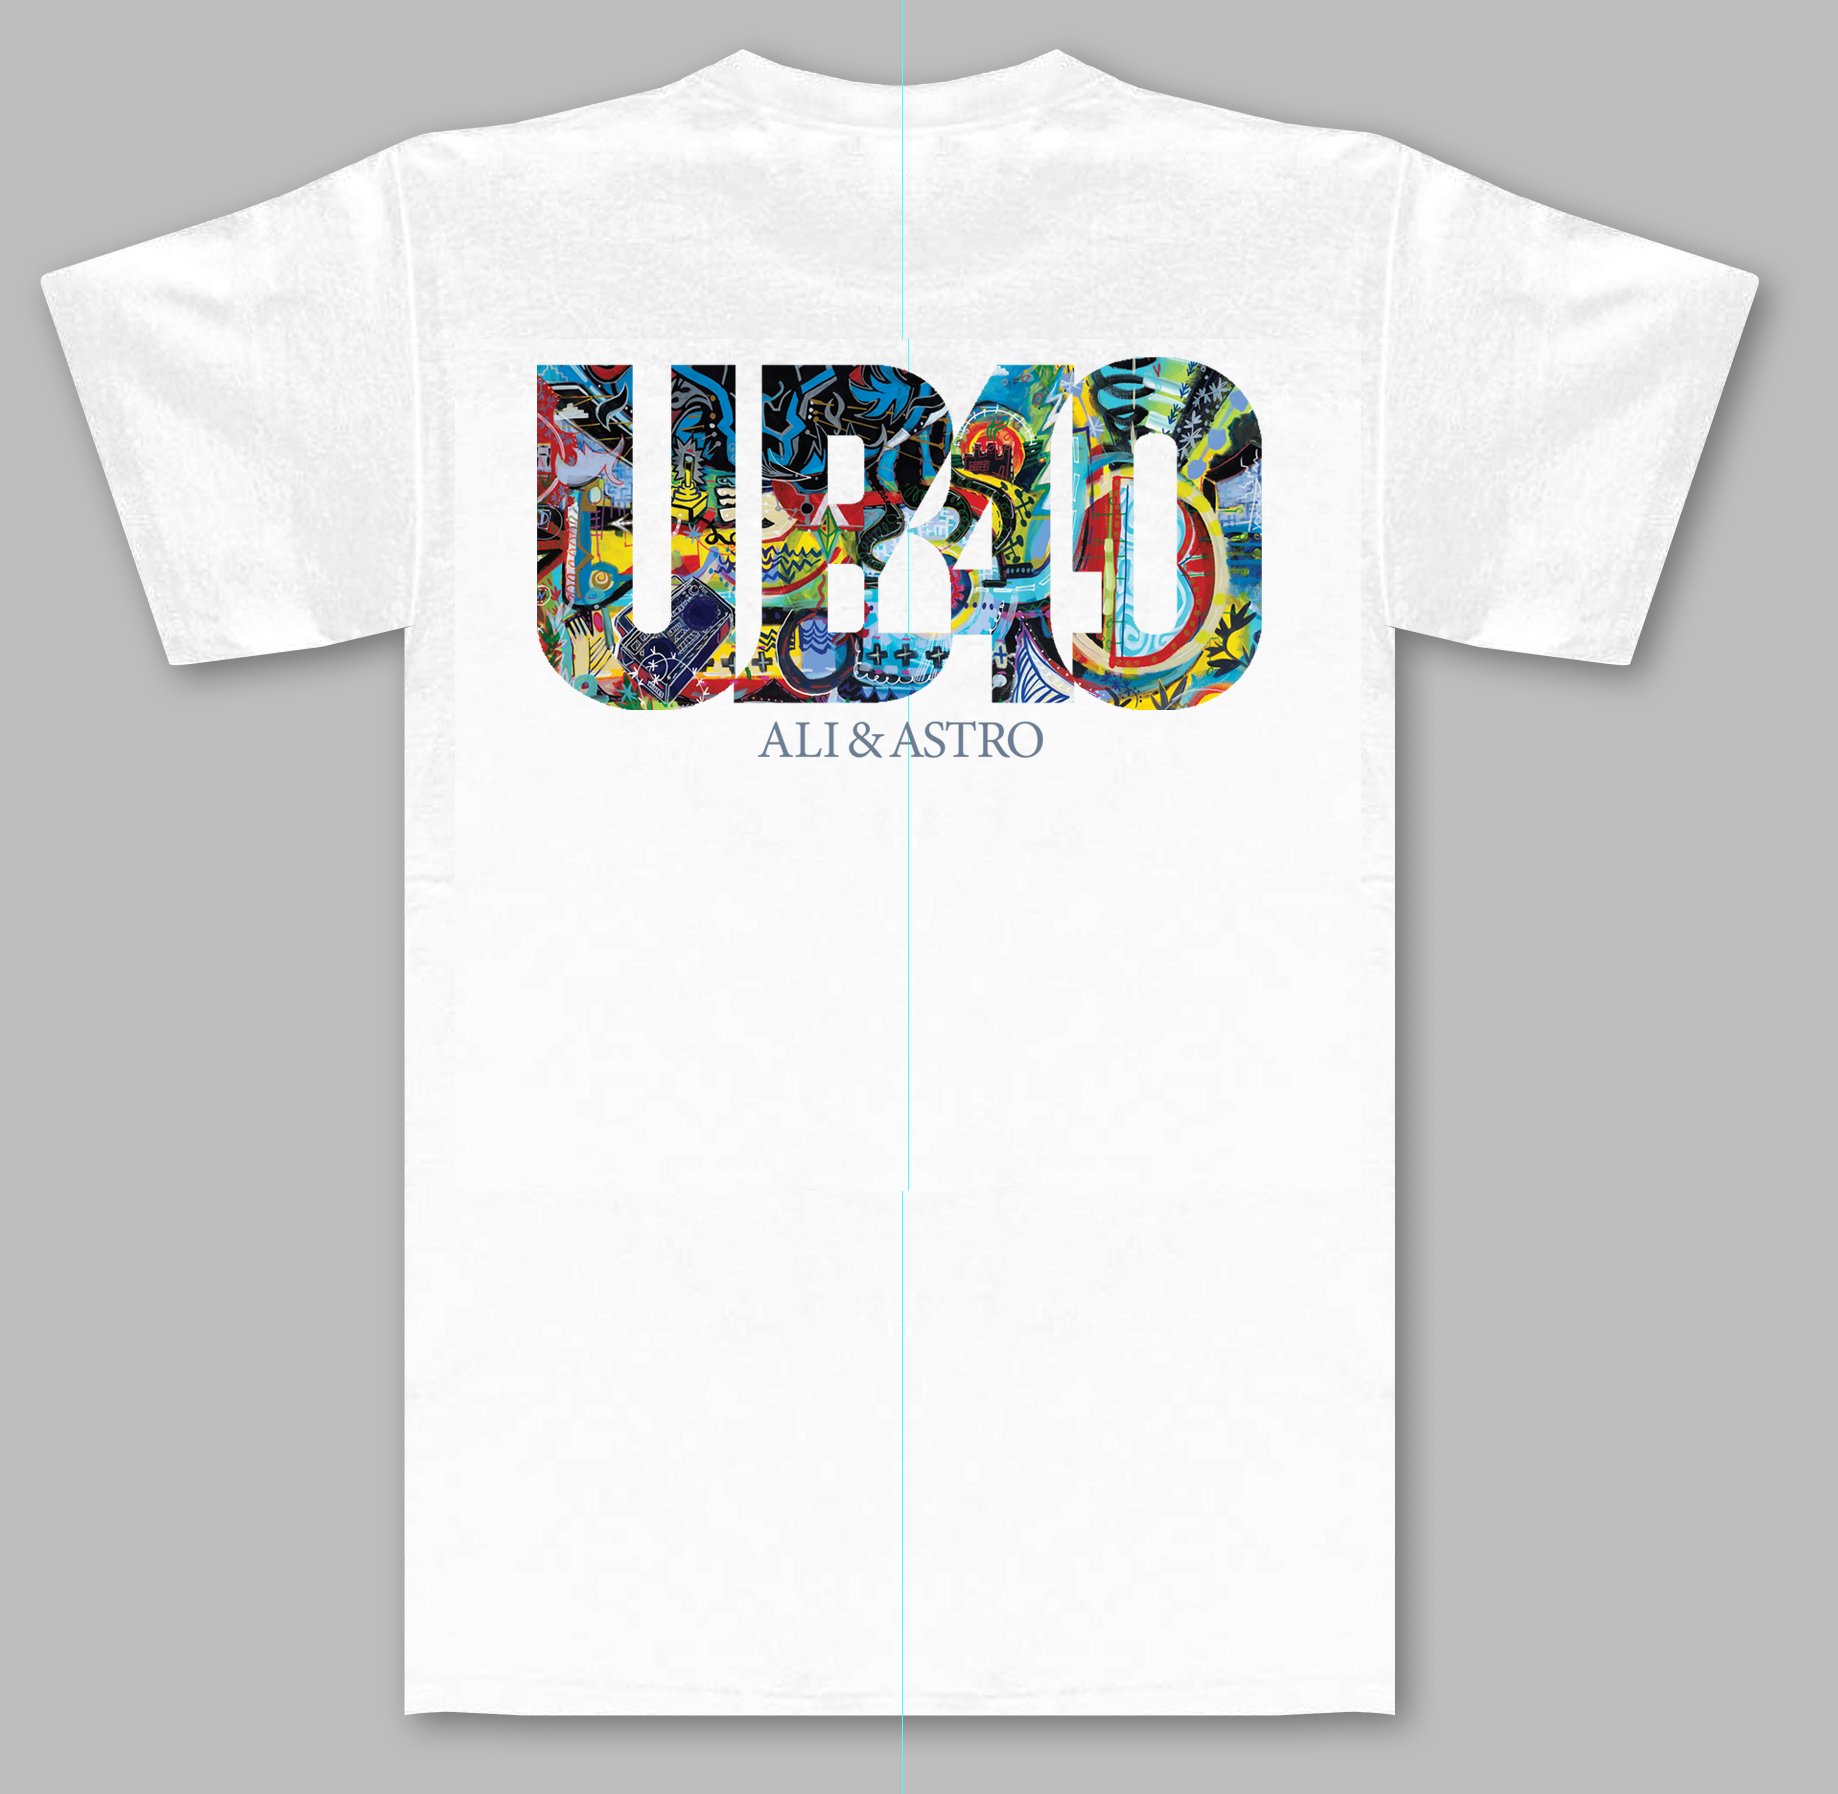 Real Laber of Love (Ali & Astro) - White Tee - UB40